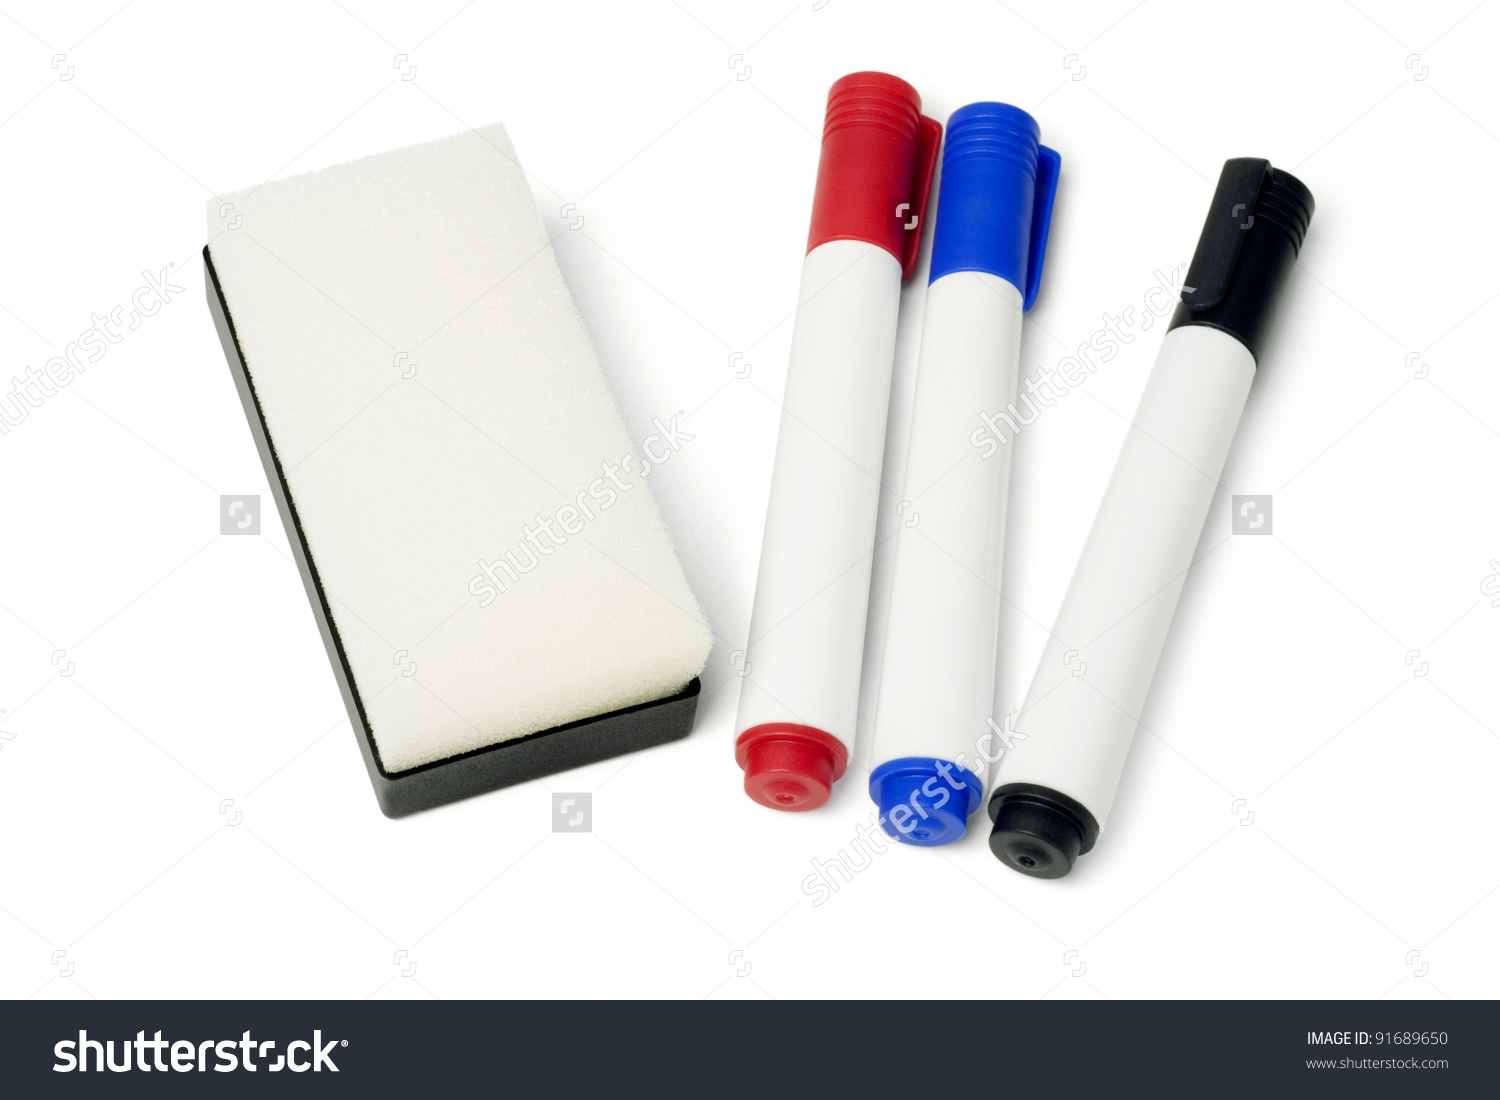 Whiteboard and pen clipart.